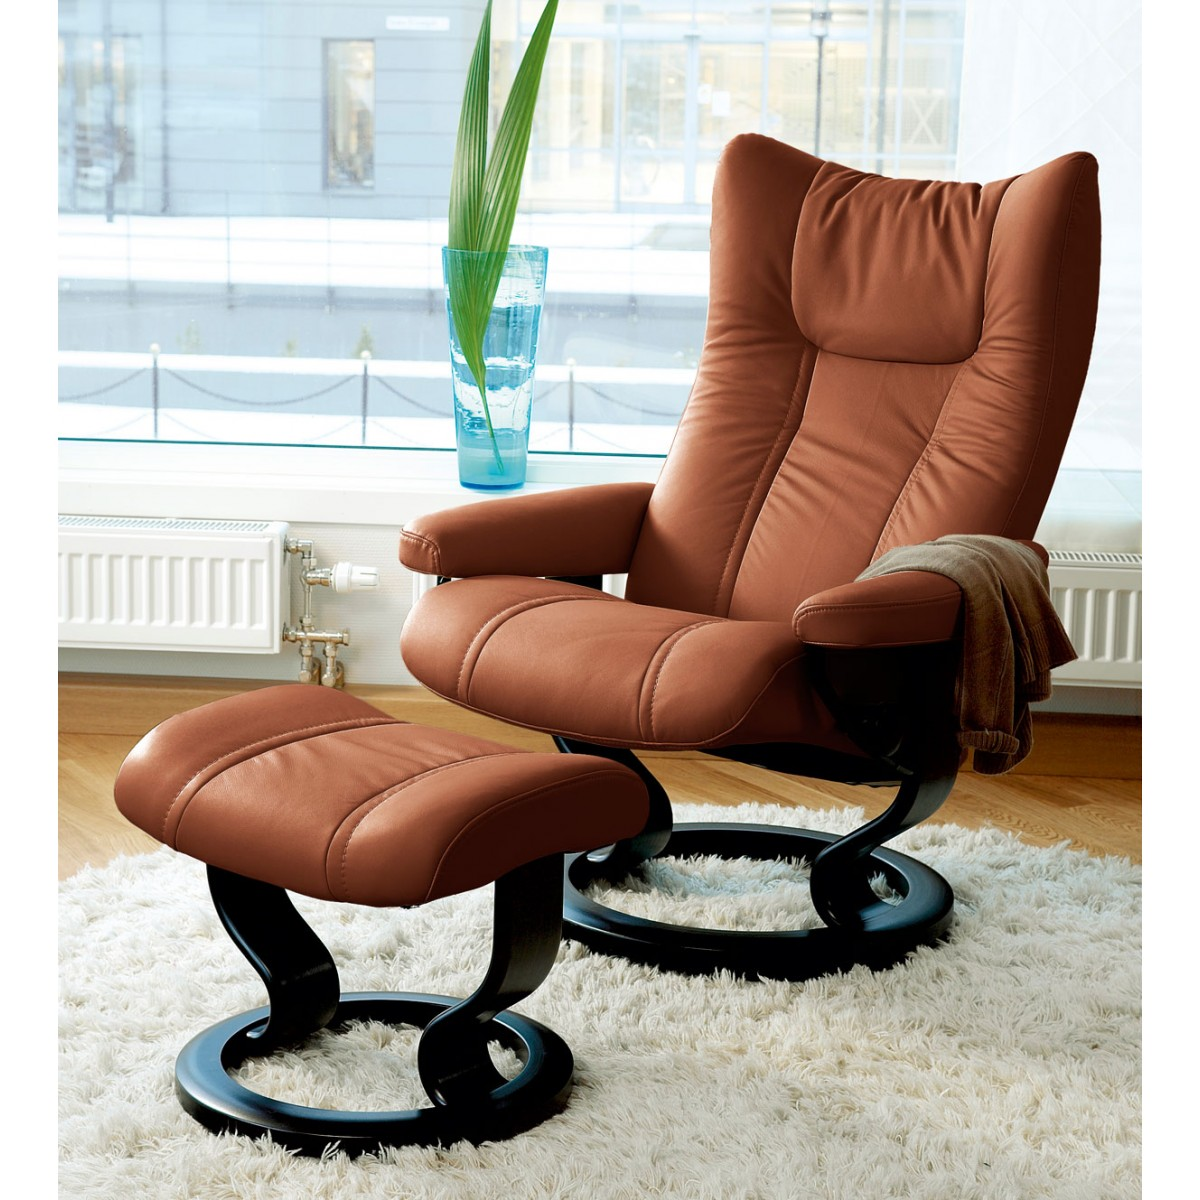 Stressless Wing Medium Recliner Amp Ottoman From 2 495 00